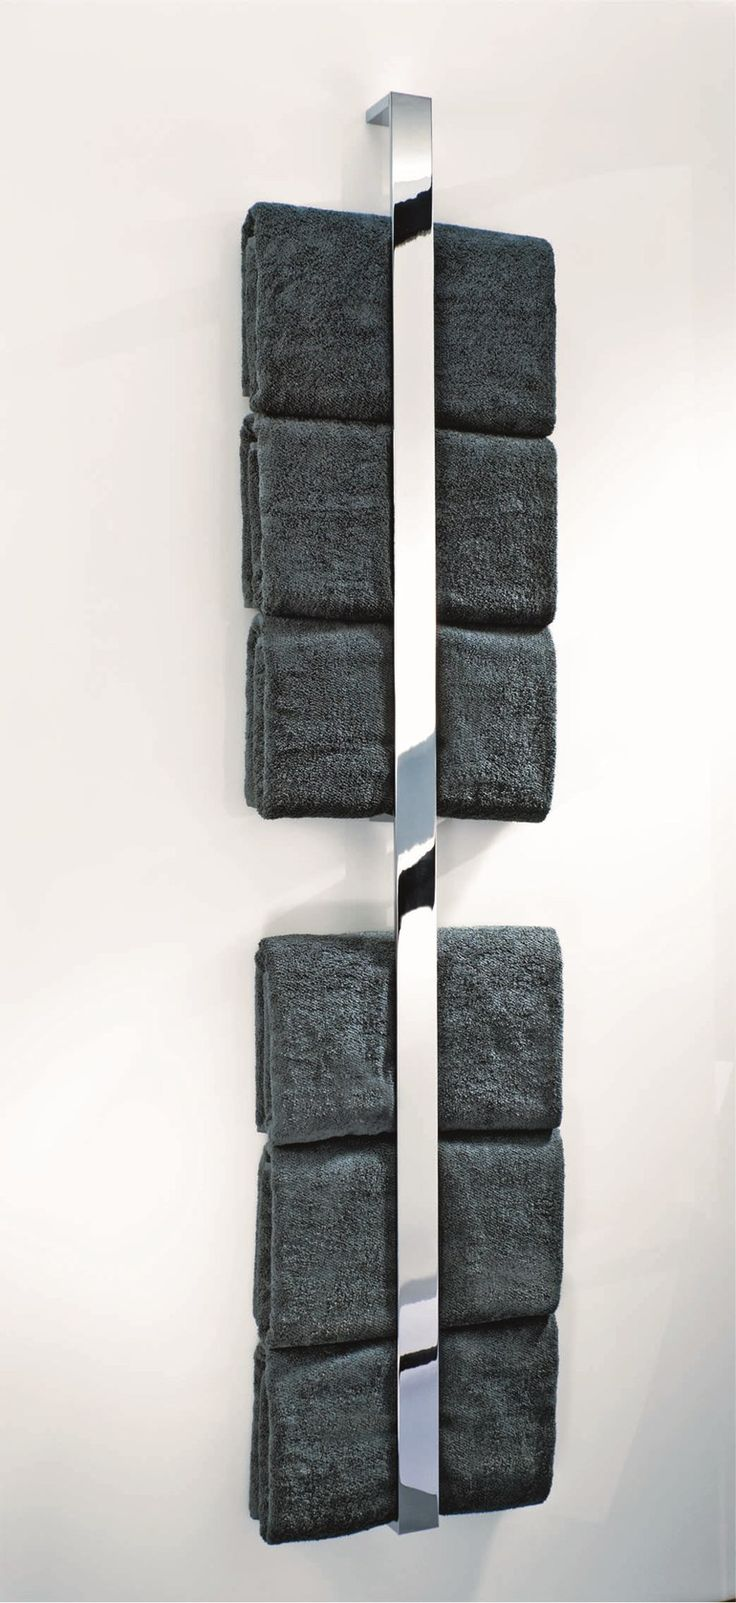 Chrome towel rack BK HL Brick Collection by DECOR WALTHER